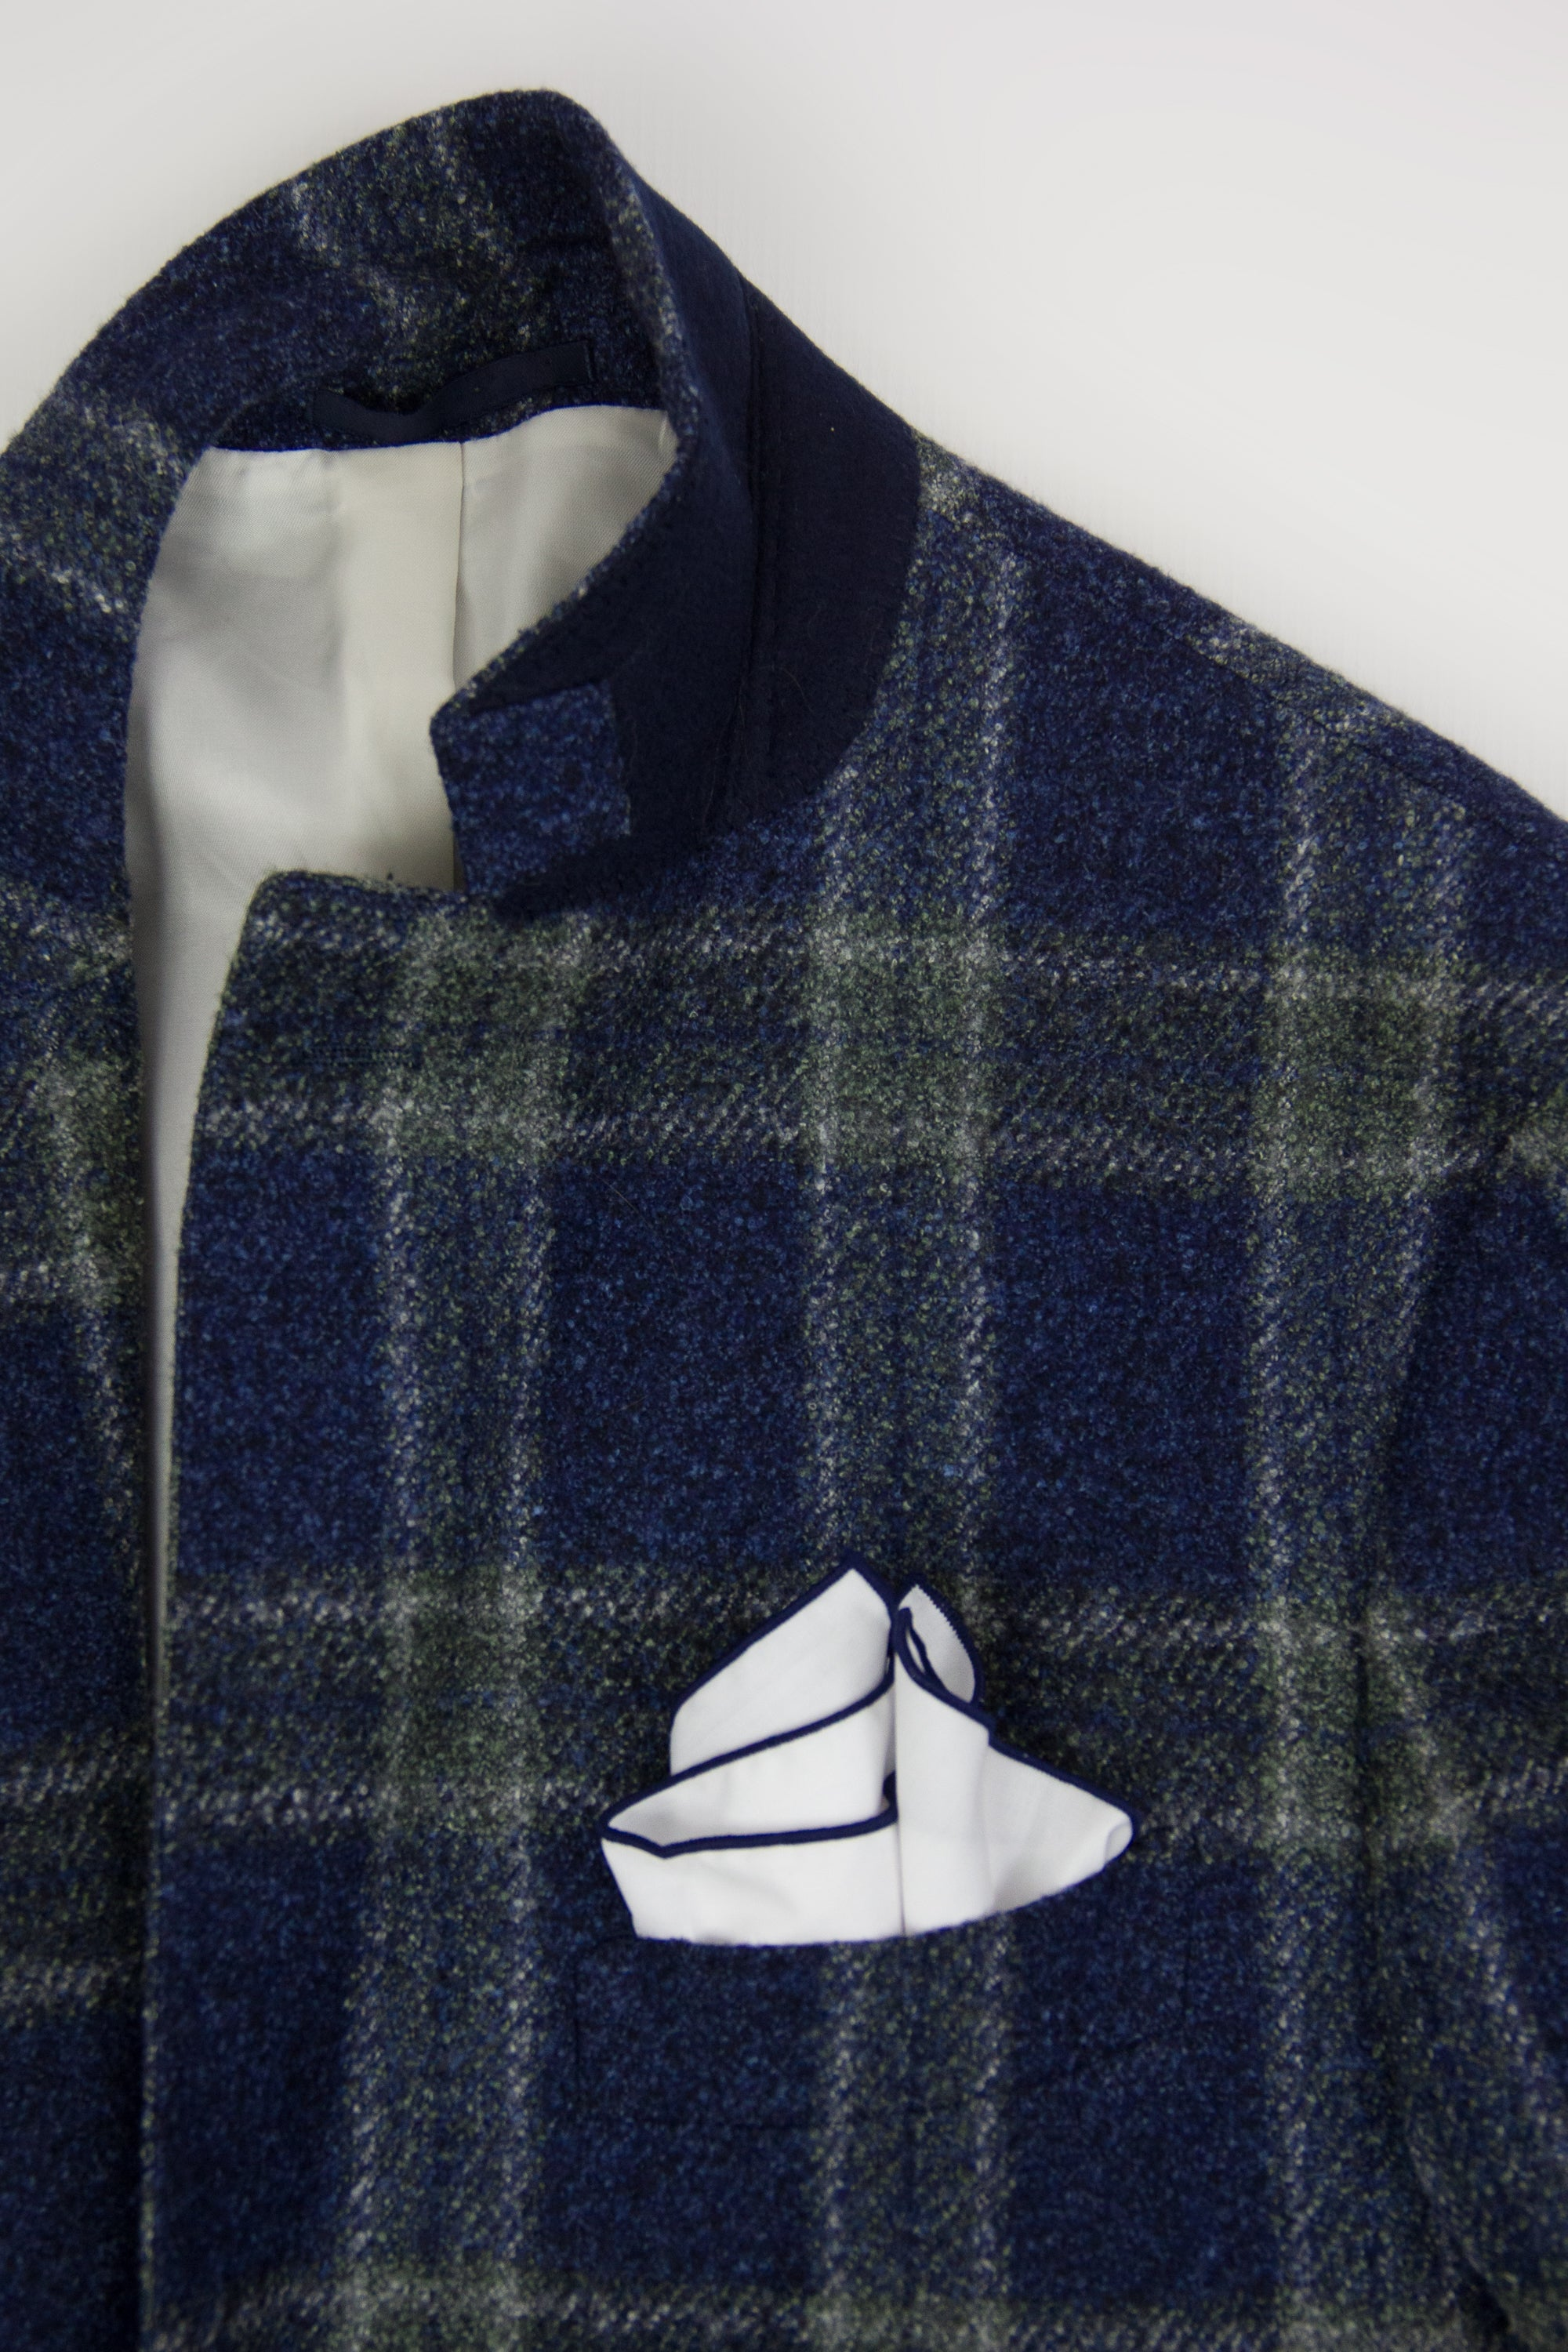 Suitsupply Wool Silk Linen Blue Plaid Blazer Sport Coat US 42R, EU 52 - secondfirst